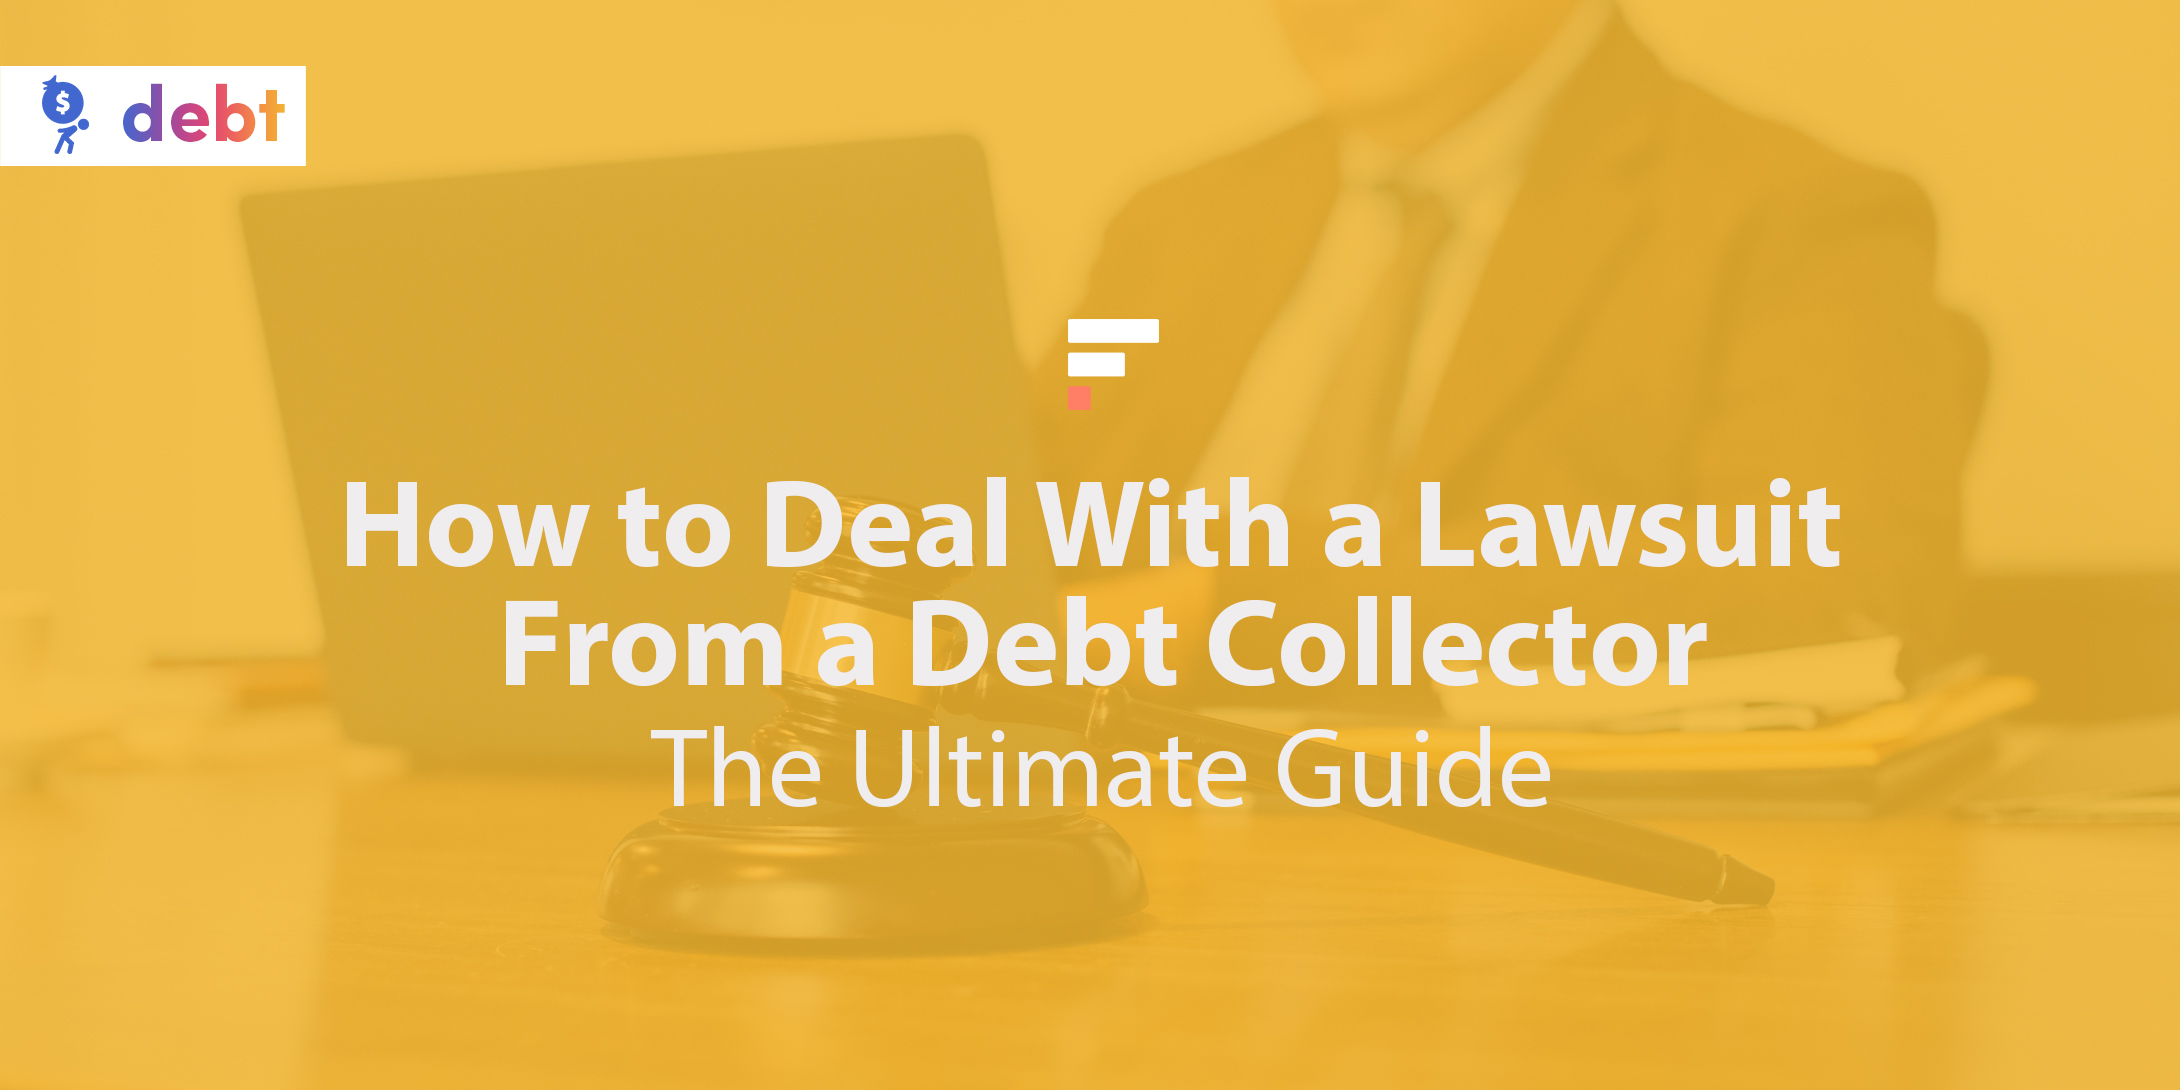 How to Deal With a Lawsuit From a Debt Collector: The Ultimate Guide